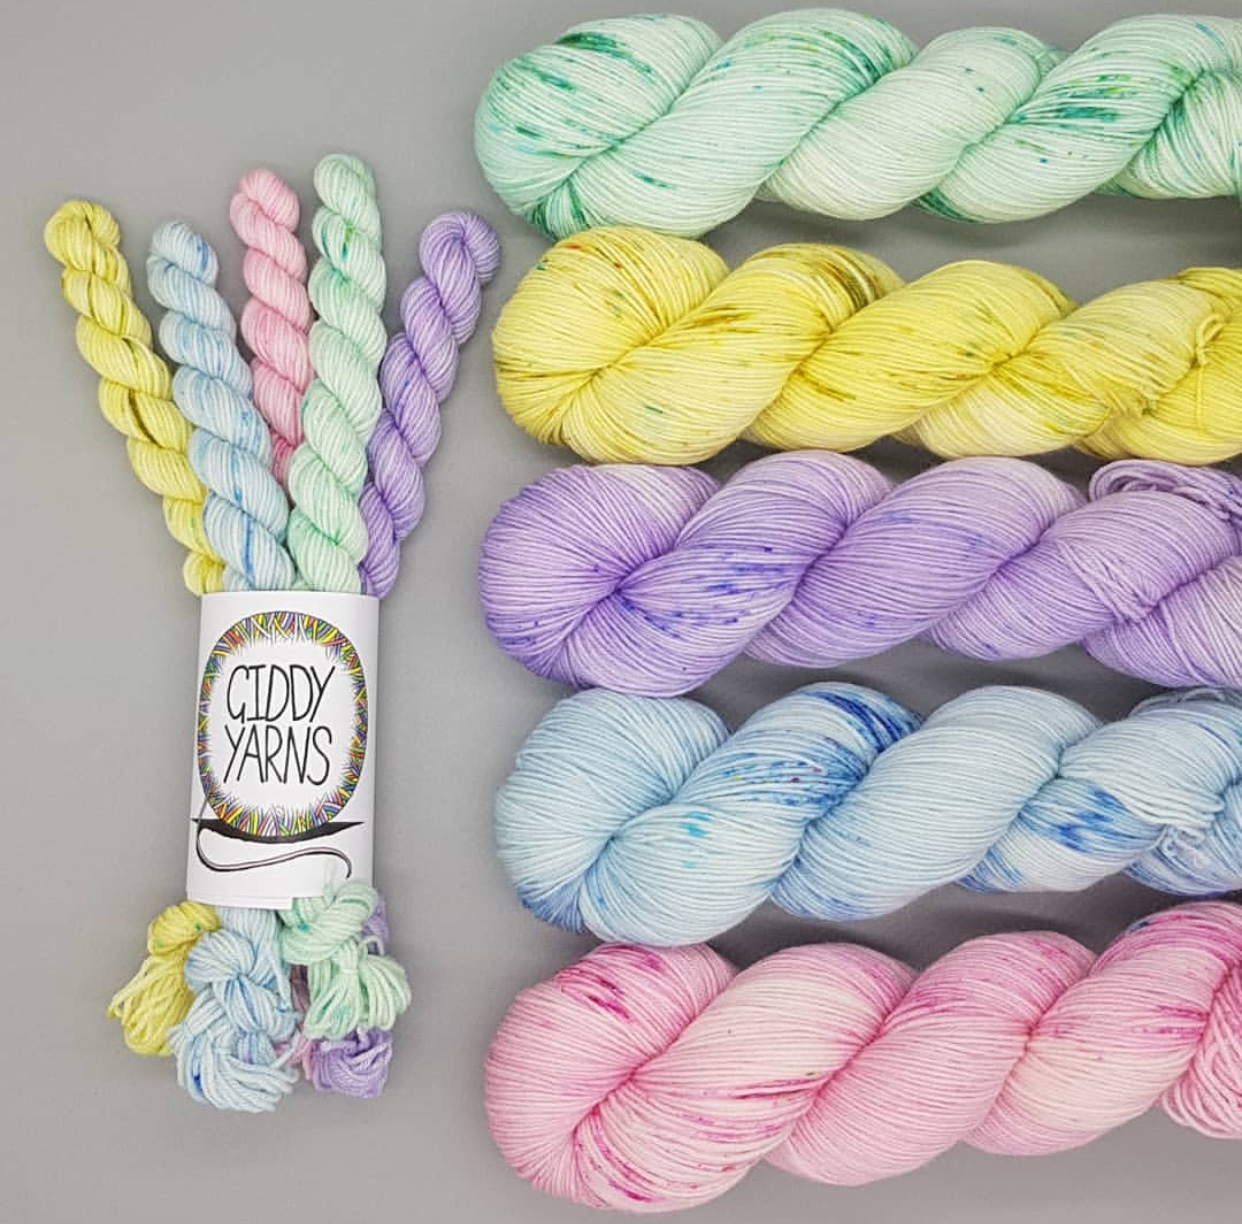 Helen of Giddy Yarns of Scotland's beautiful Spring Garden Collection